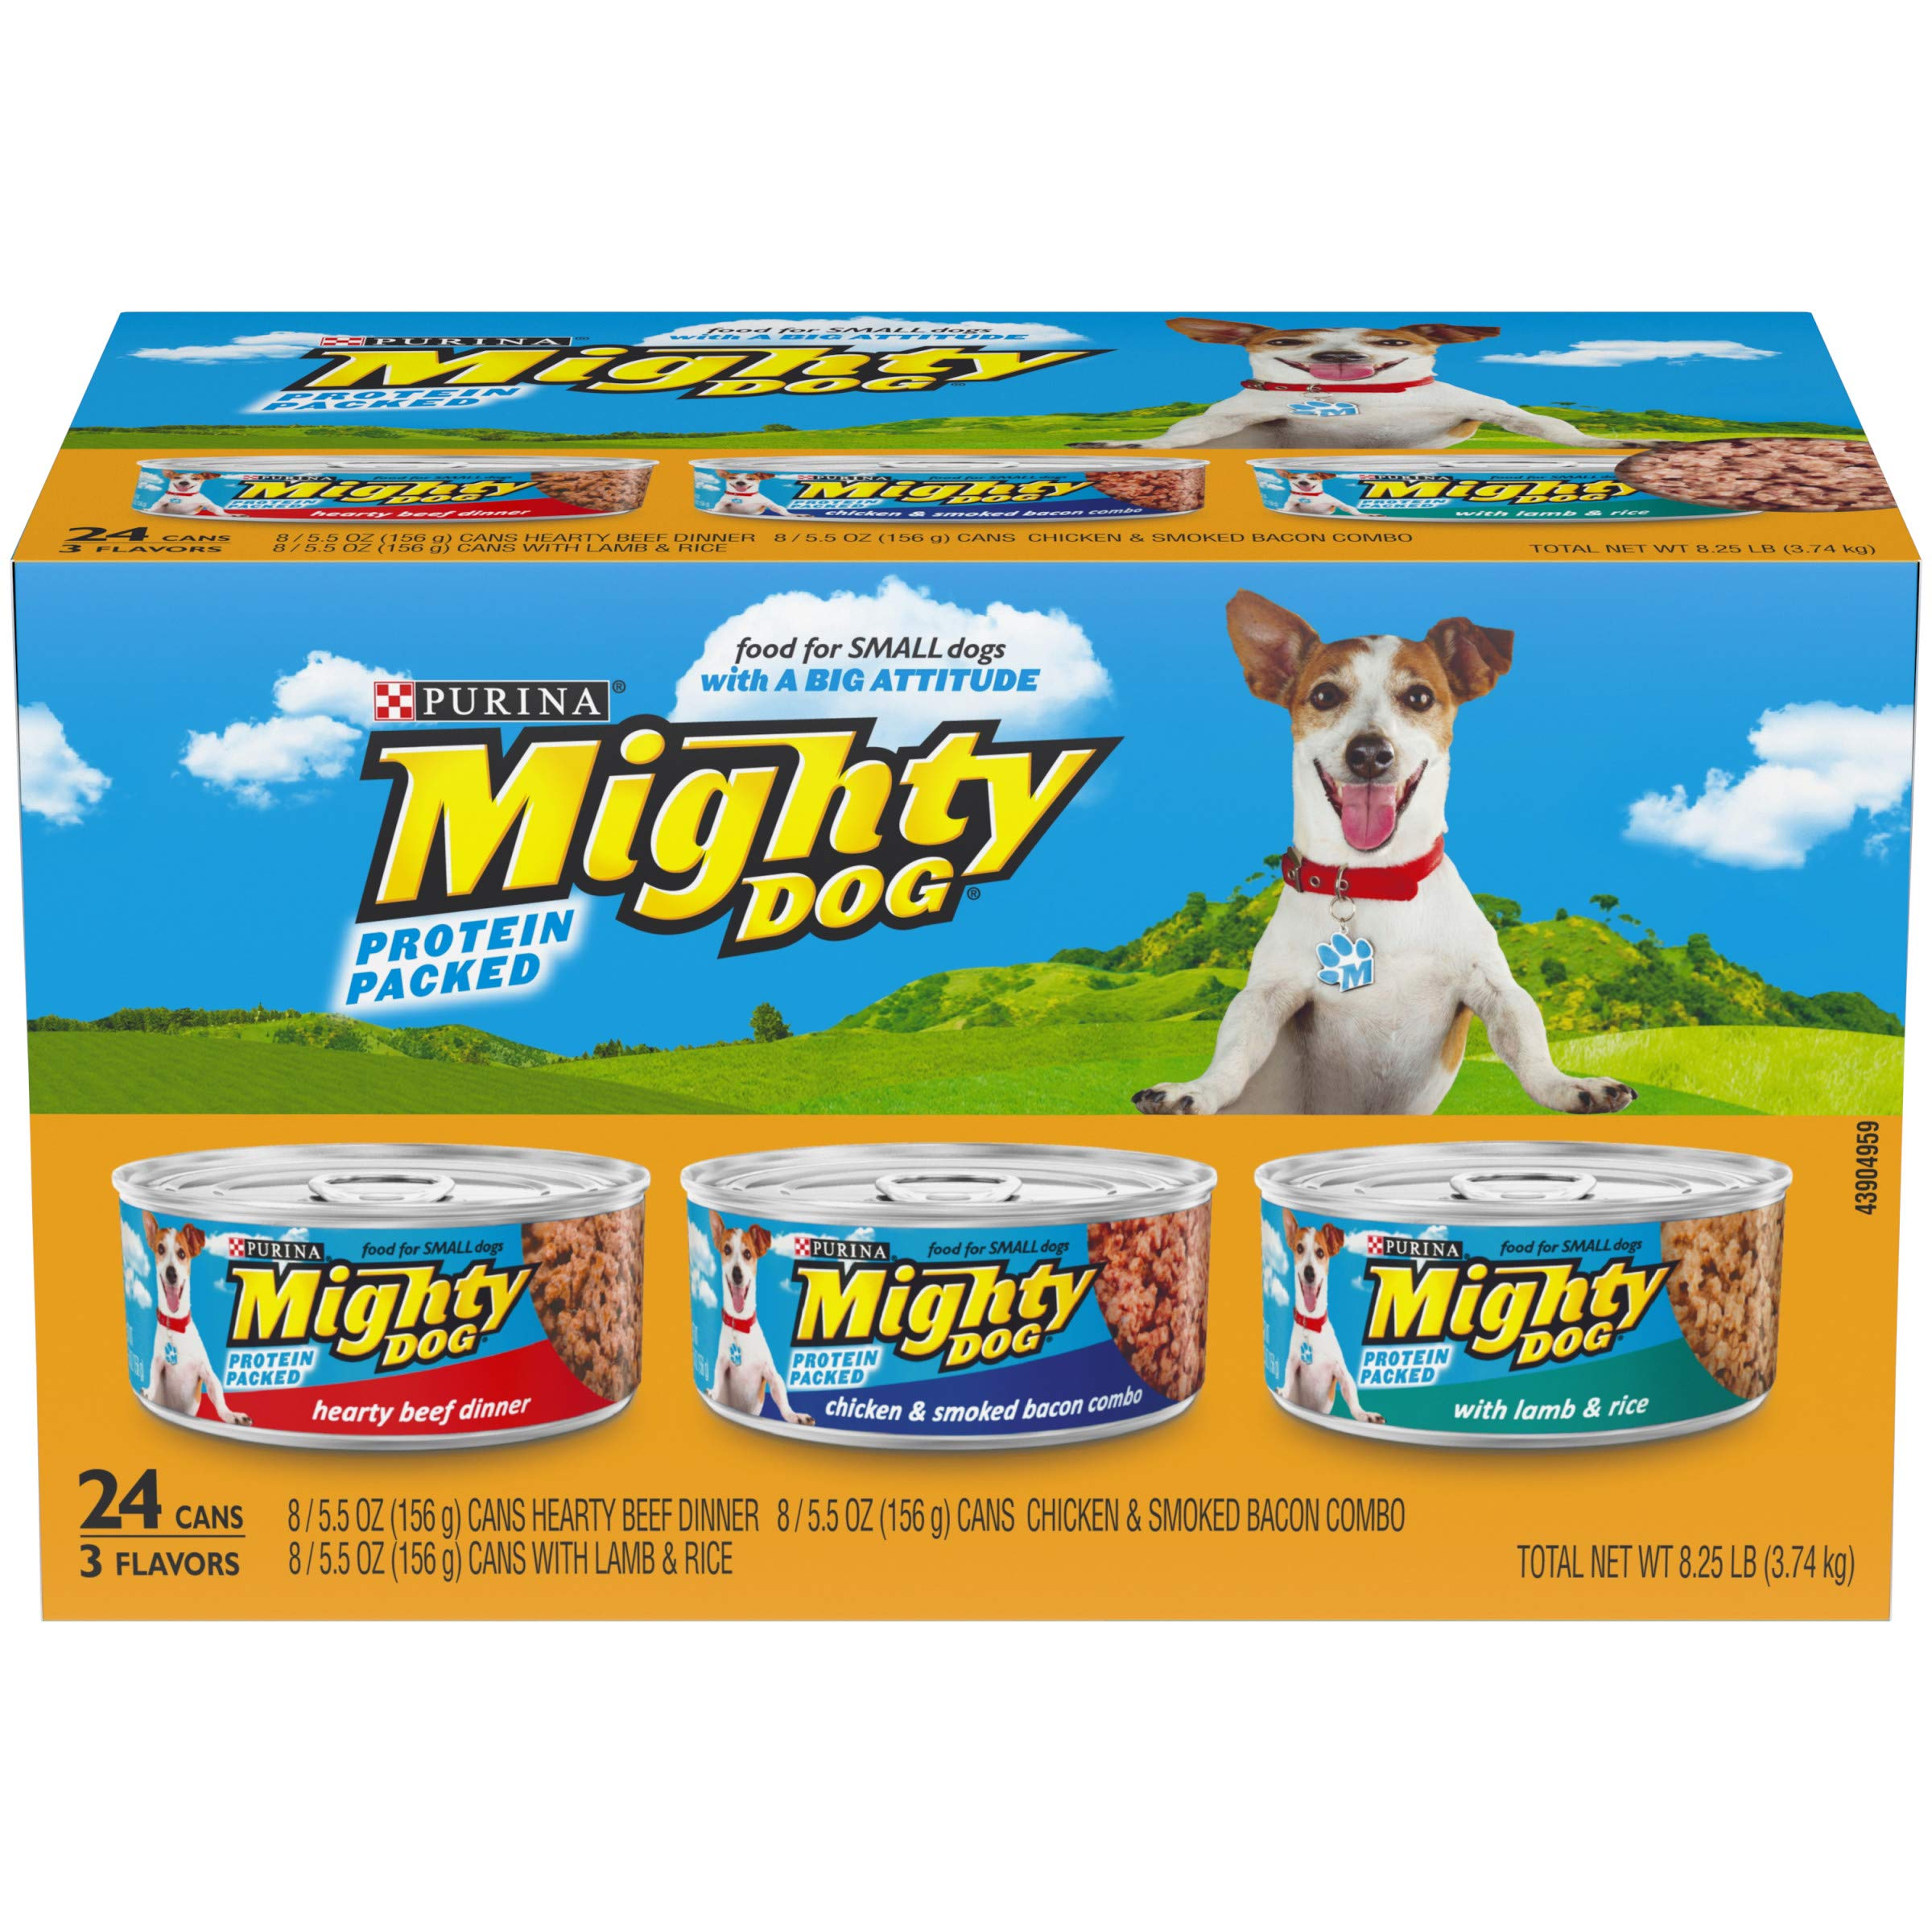 Purina Mighty Dog Small Breed Wet Dog Food Variety Pack, Hearty Beef, Smoked Chicken & Bacon Combo, Lamb & Rice - (24) 5.5 oz. Cans by PURINA Mighty Dog